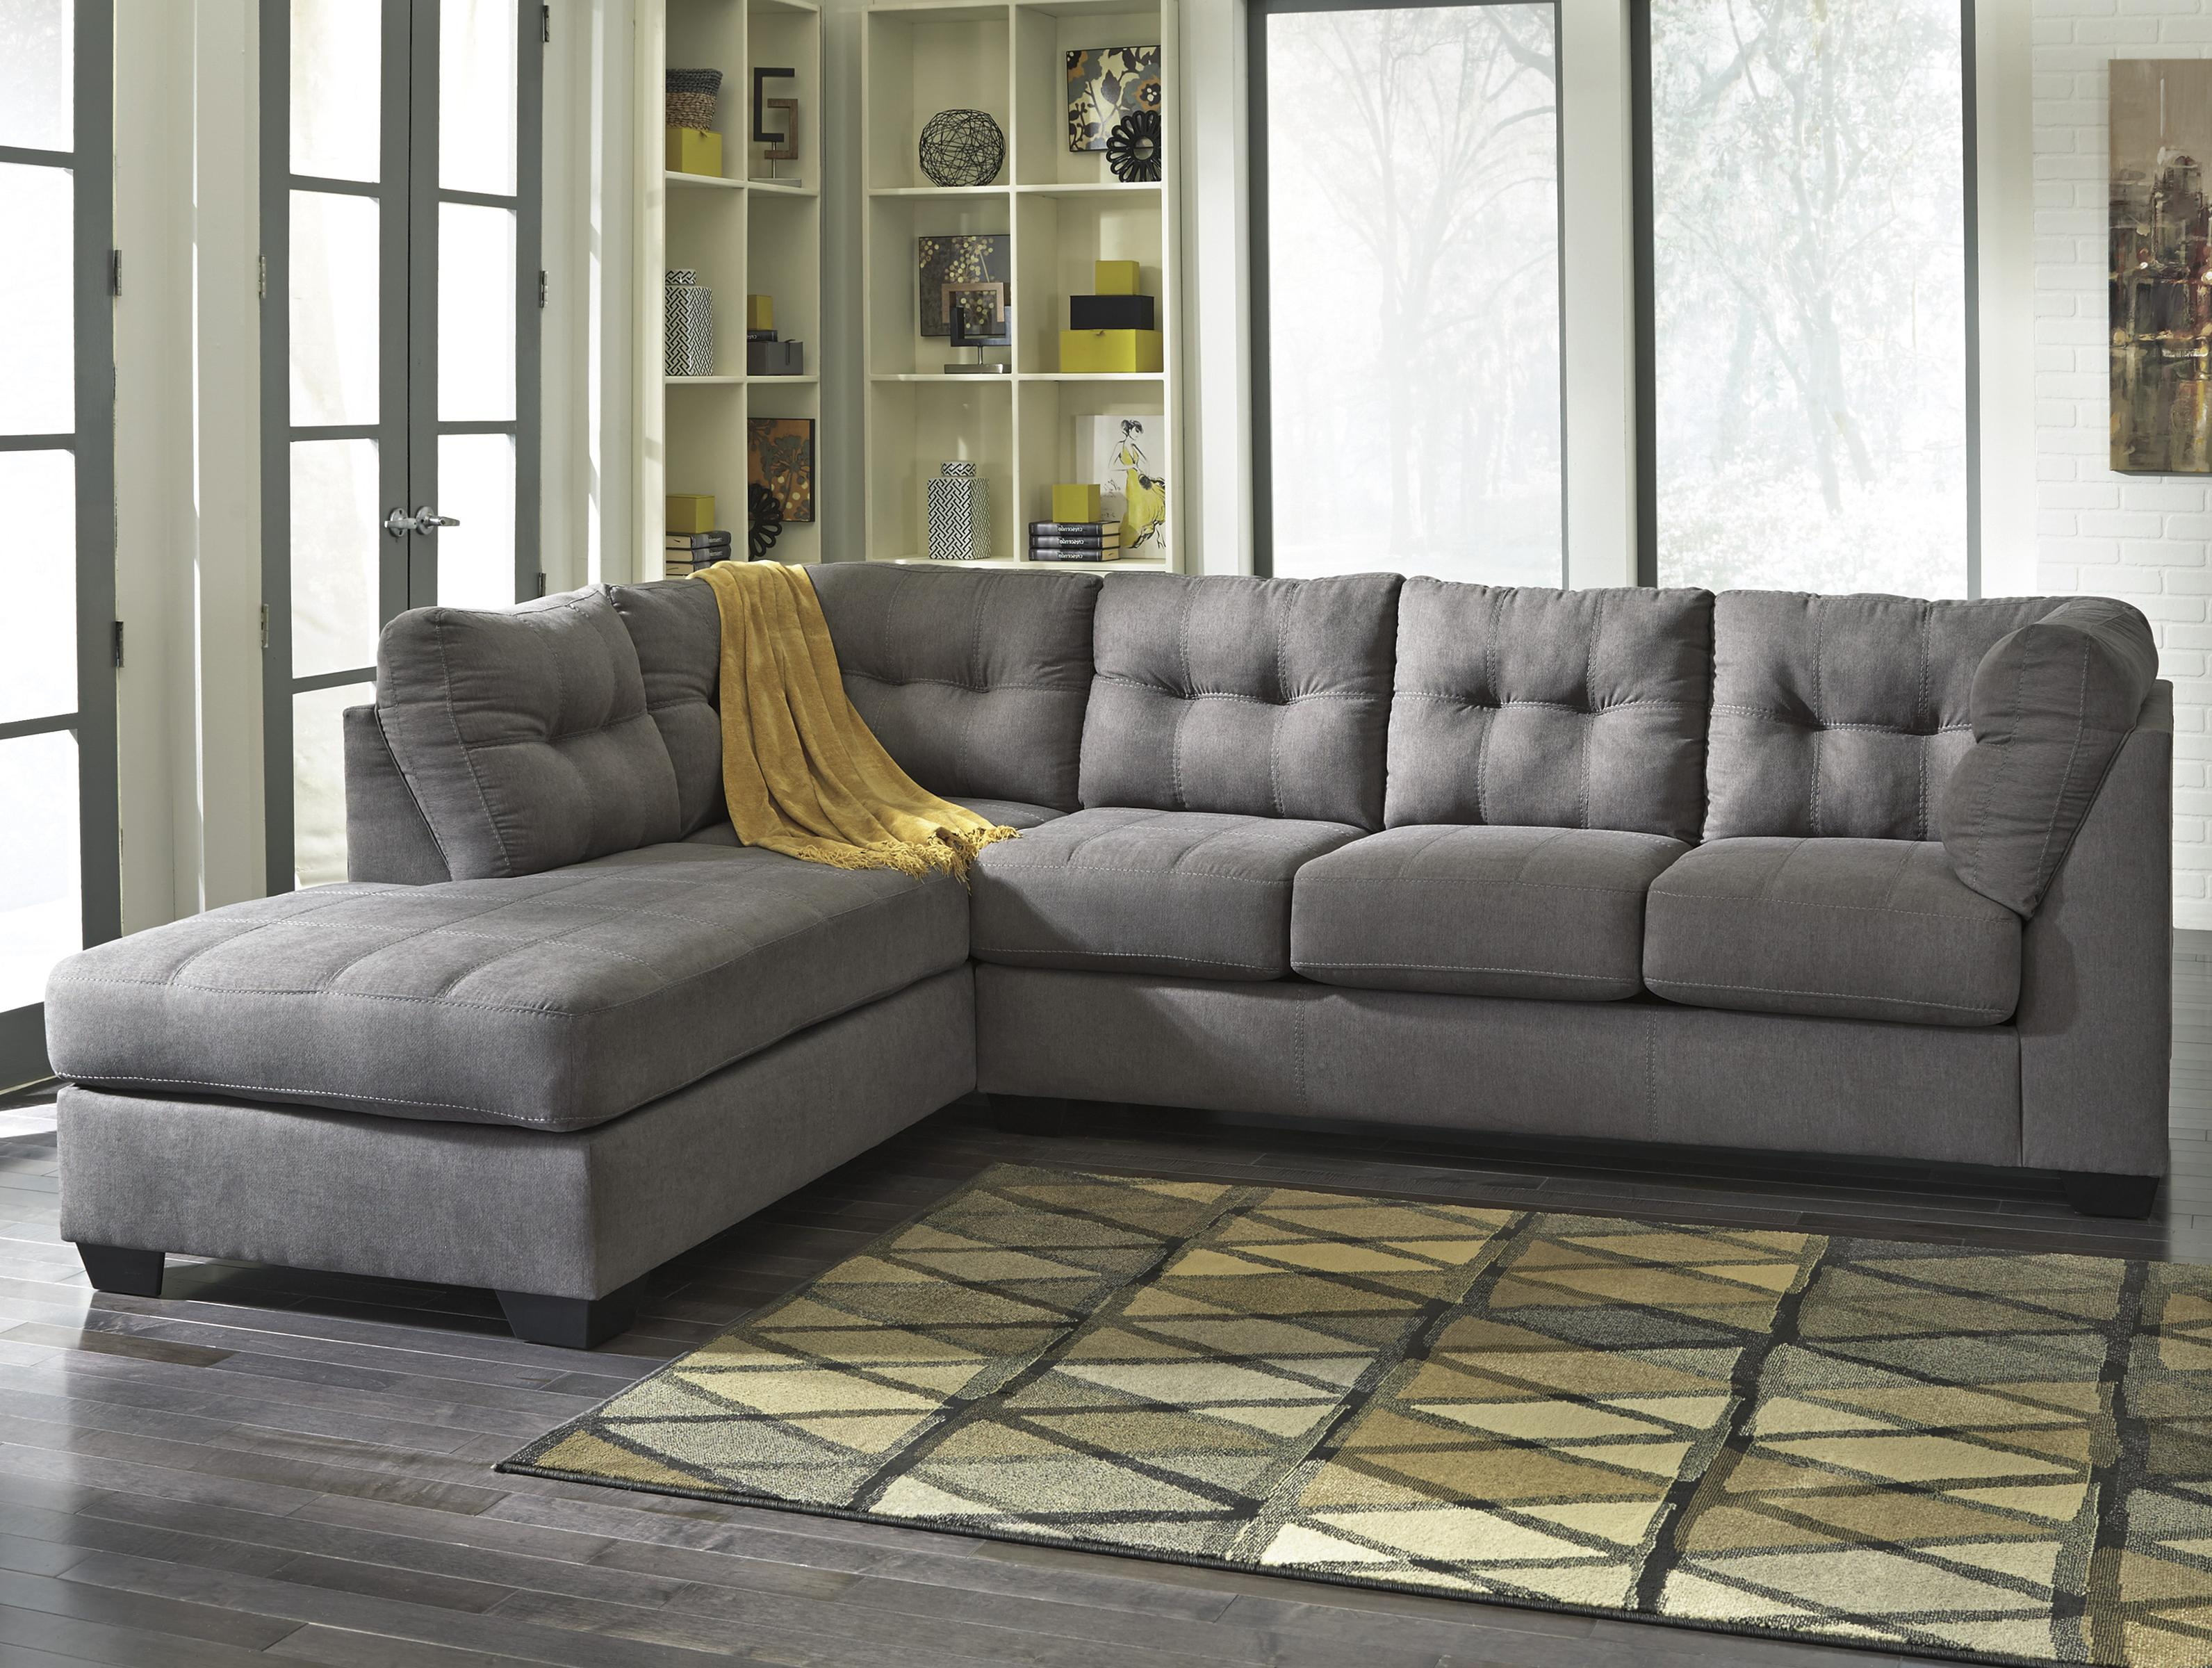 Maier - Charcoal 2-Piece Sectional w/ Sleeper & Chaise by Benchcraft at Standard Furniture